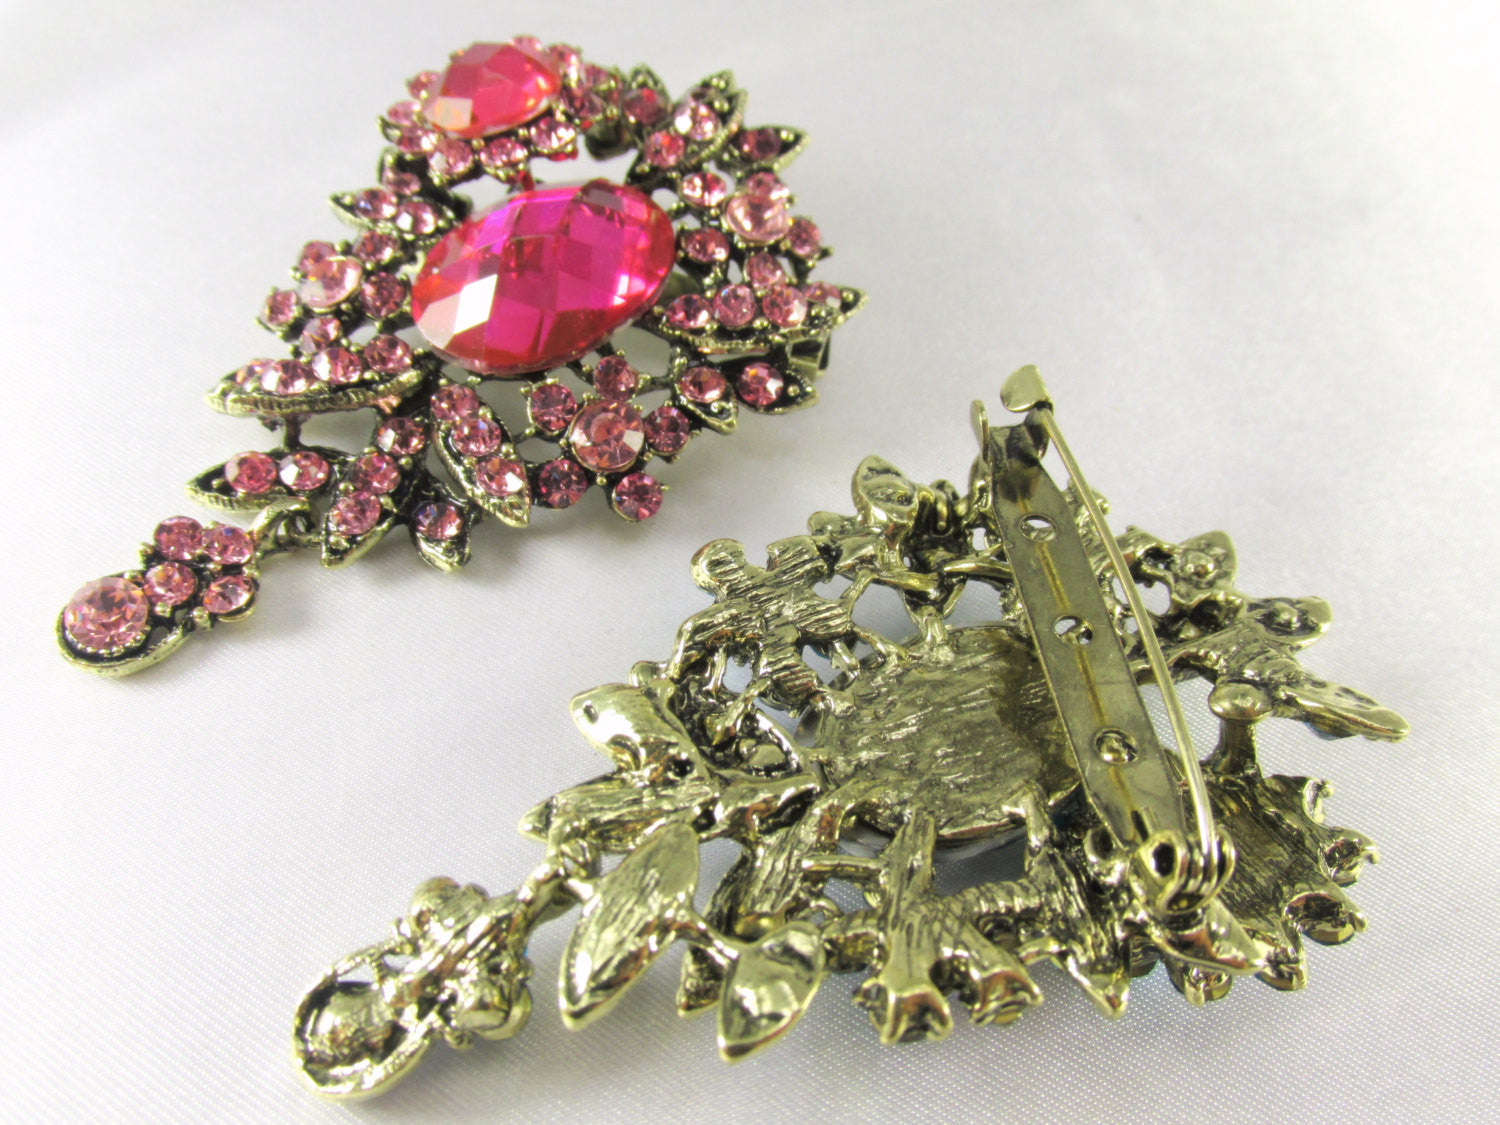 Pink Teardrop 2.75 Inch Brooch in Antique Brass - Odyssey Creations